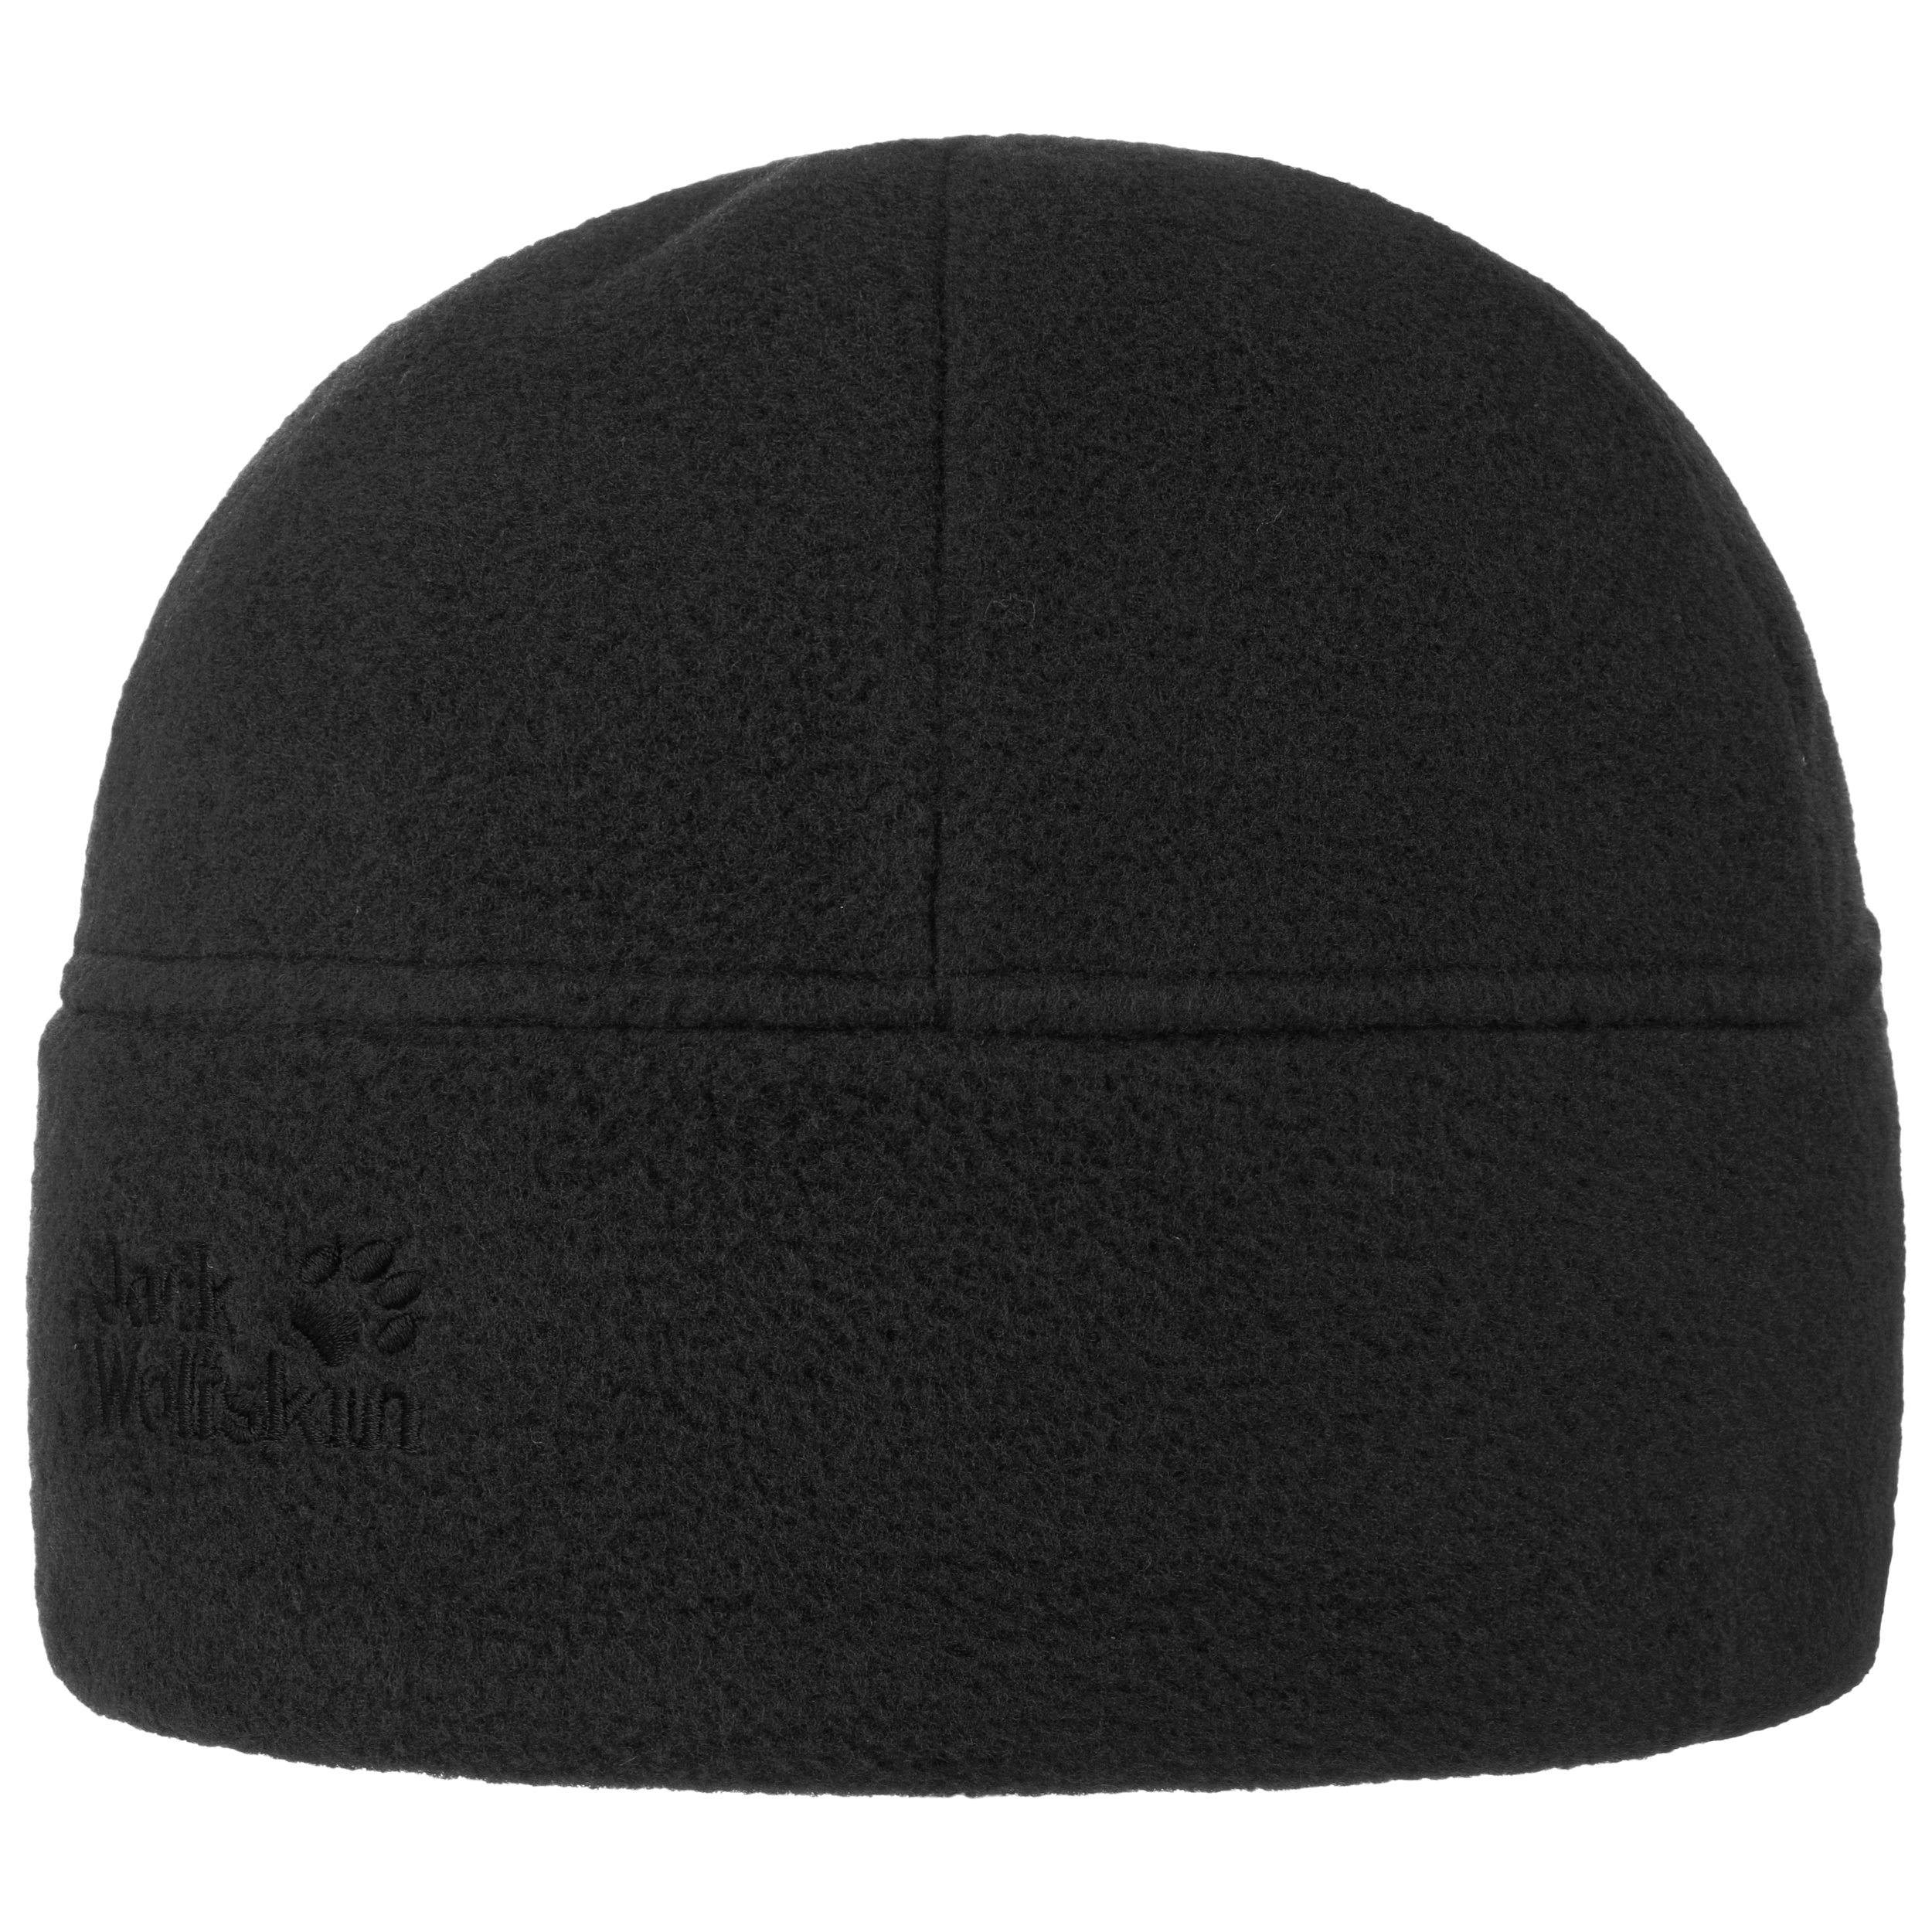 the latest 5ea35 52f1f Berretto Beanie Stormlock by Jack Wolfskin